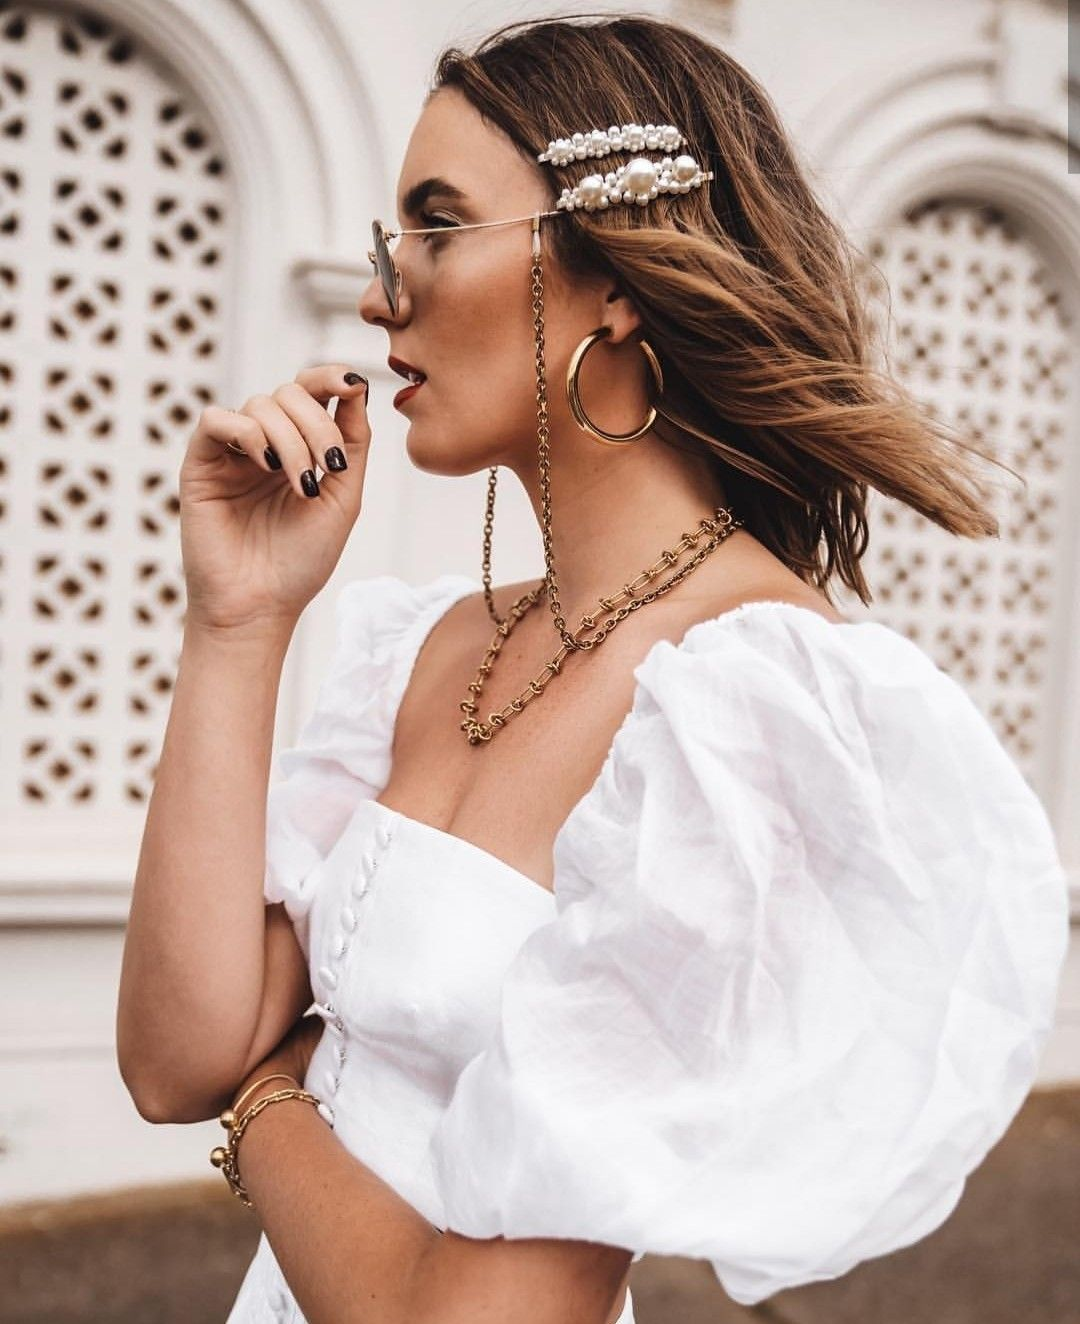 Hair accessories and puff sleeves on point 💓 #hairclips #pearlhairclips #pearlbarrettes #pearlaccessories #puffsleeves #milkmaidtops #chainnecklaces